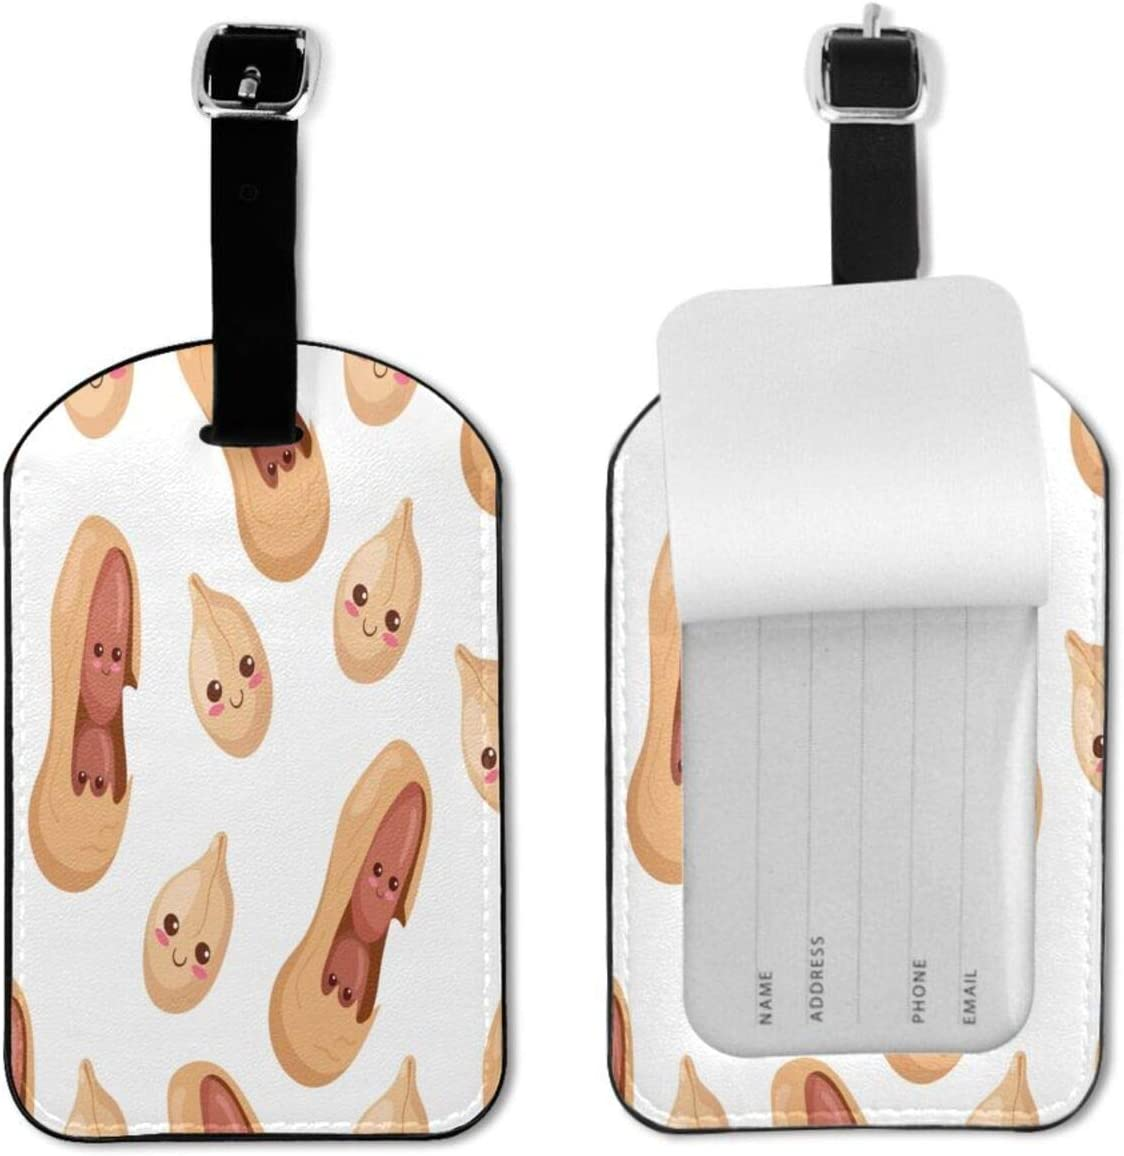 Luggage Tag Kawaii Peanuts Cute Food Funny Nuts Baggage Bag Tags for Women Men Suitcases Luggage Travel